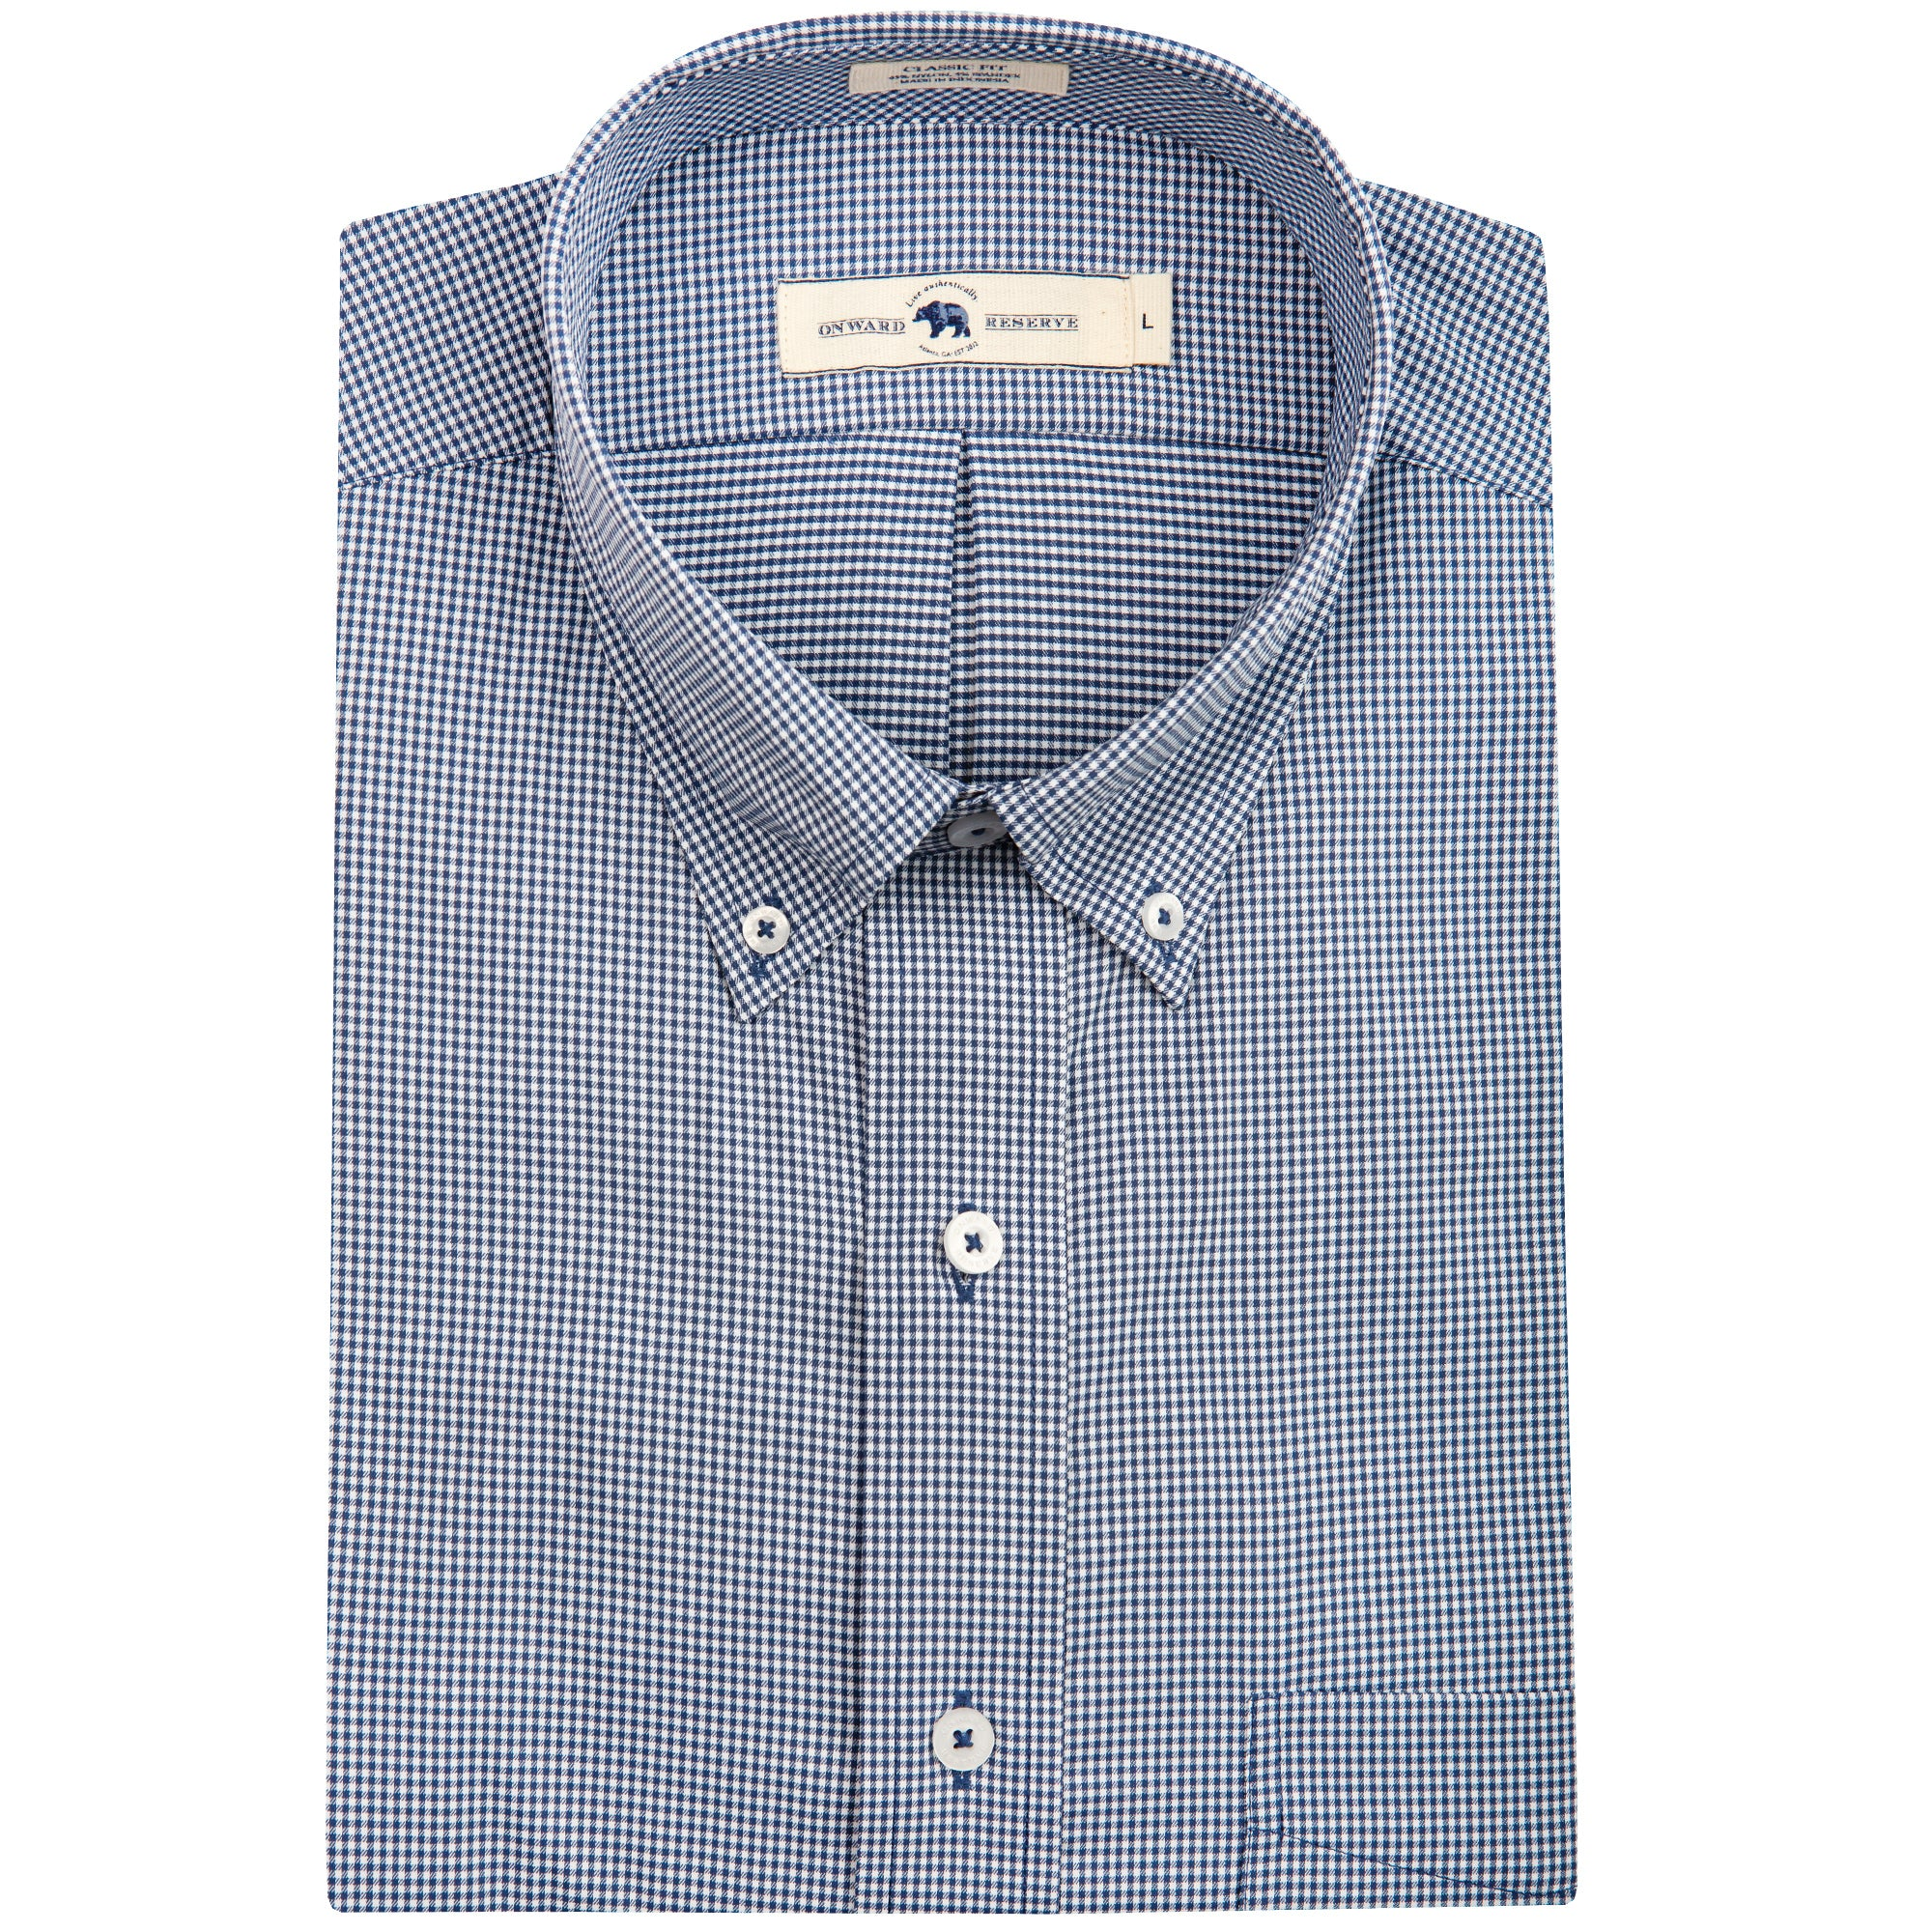 Platte Classic Fit Performance Button Down - OnwardReserve